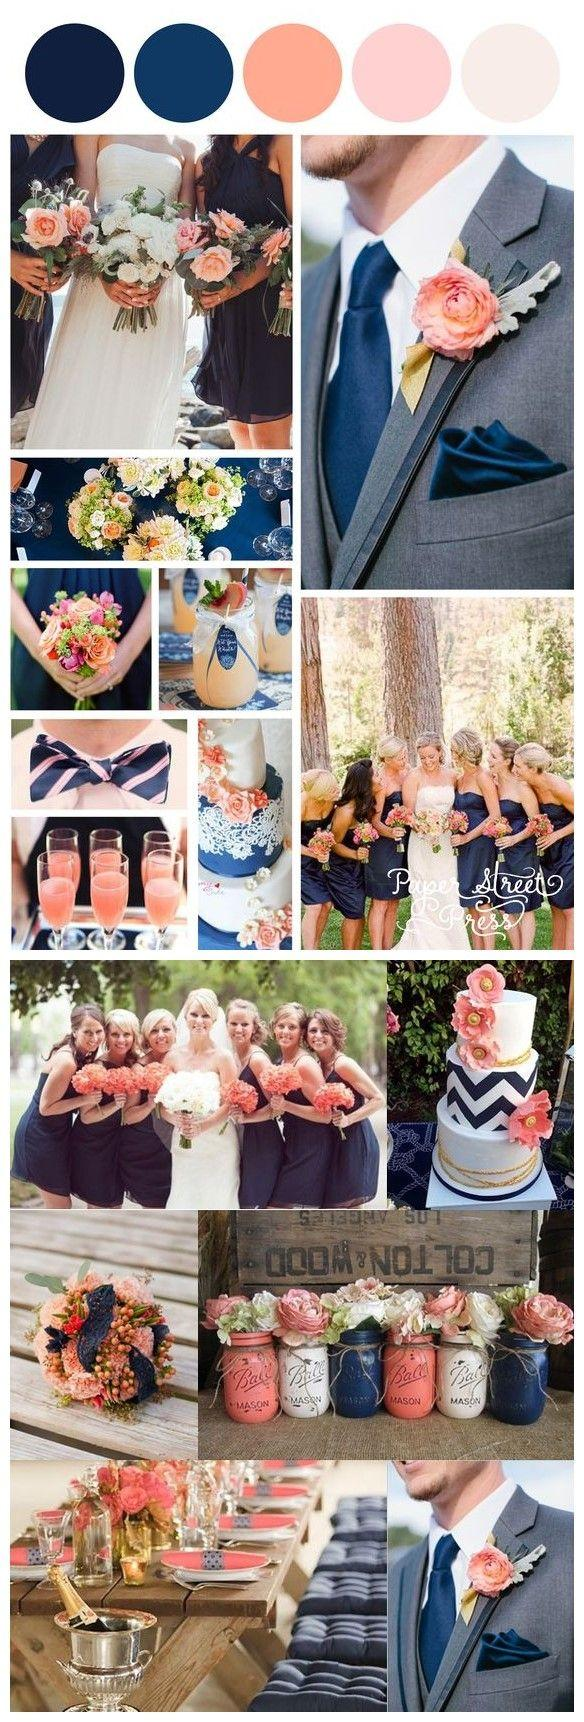 Düğün - 18 Peach And Navy Blue Inspired Wedding Color Ideas